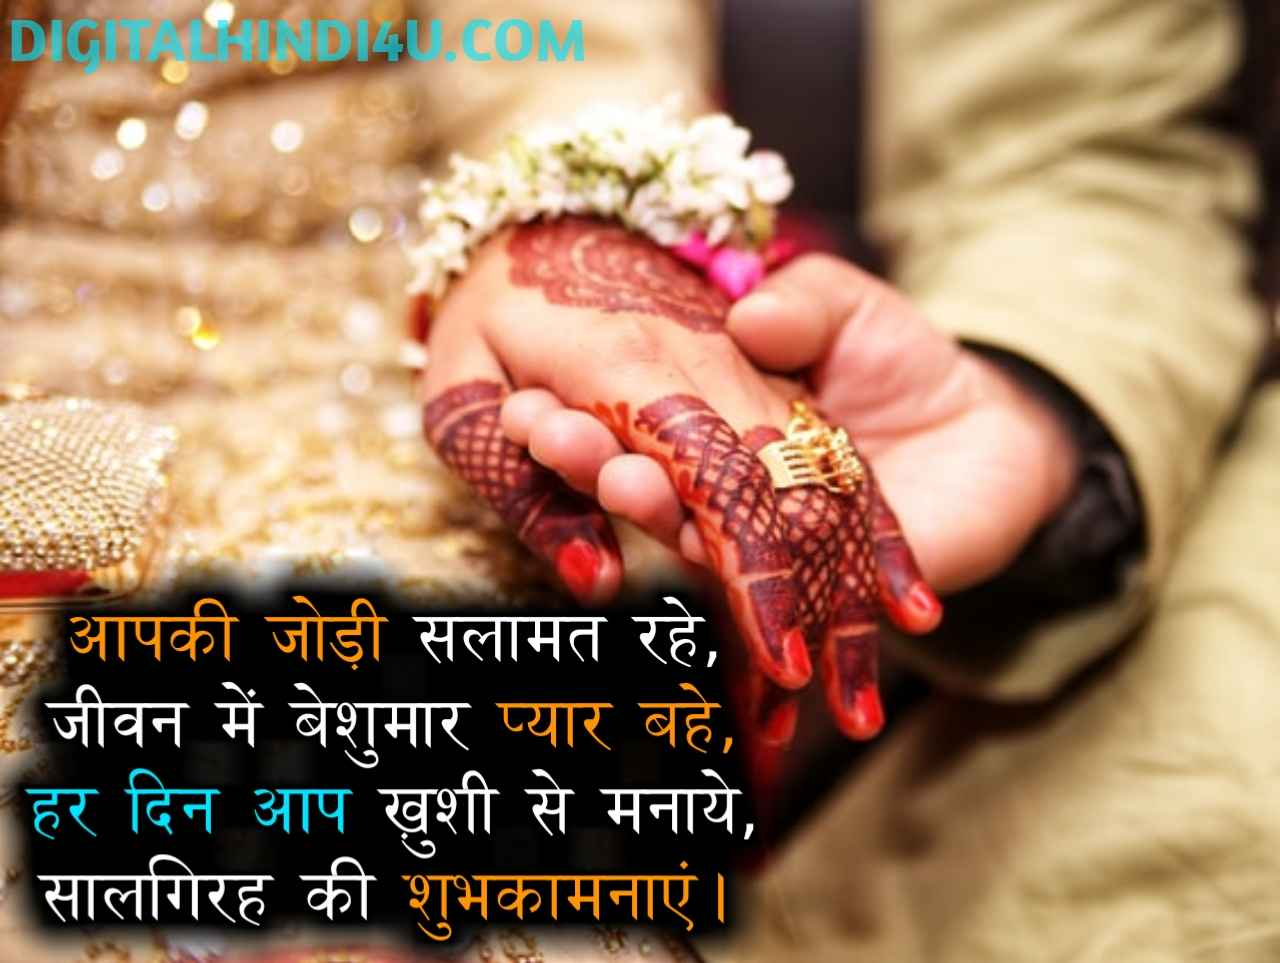 Marriage Anniversary Wishes images download